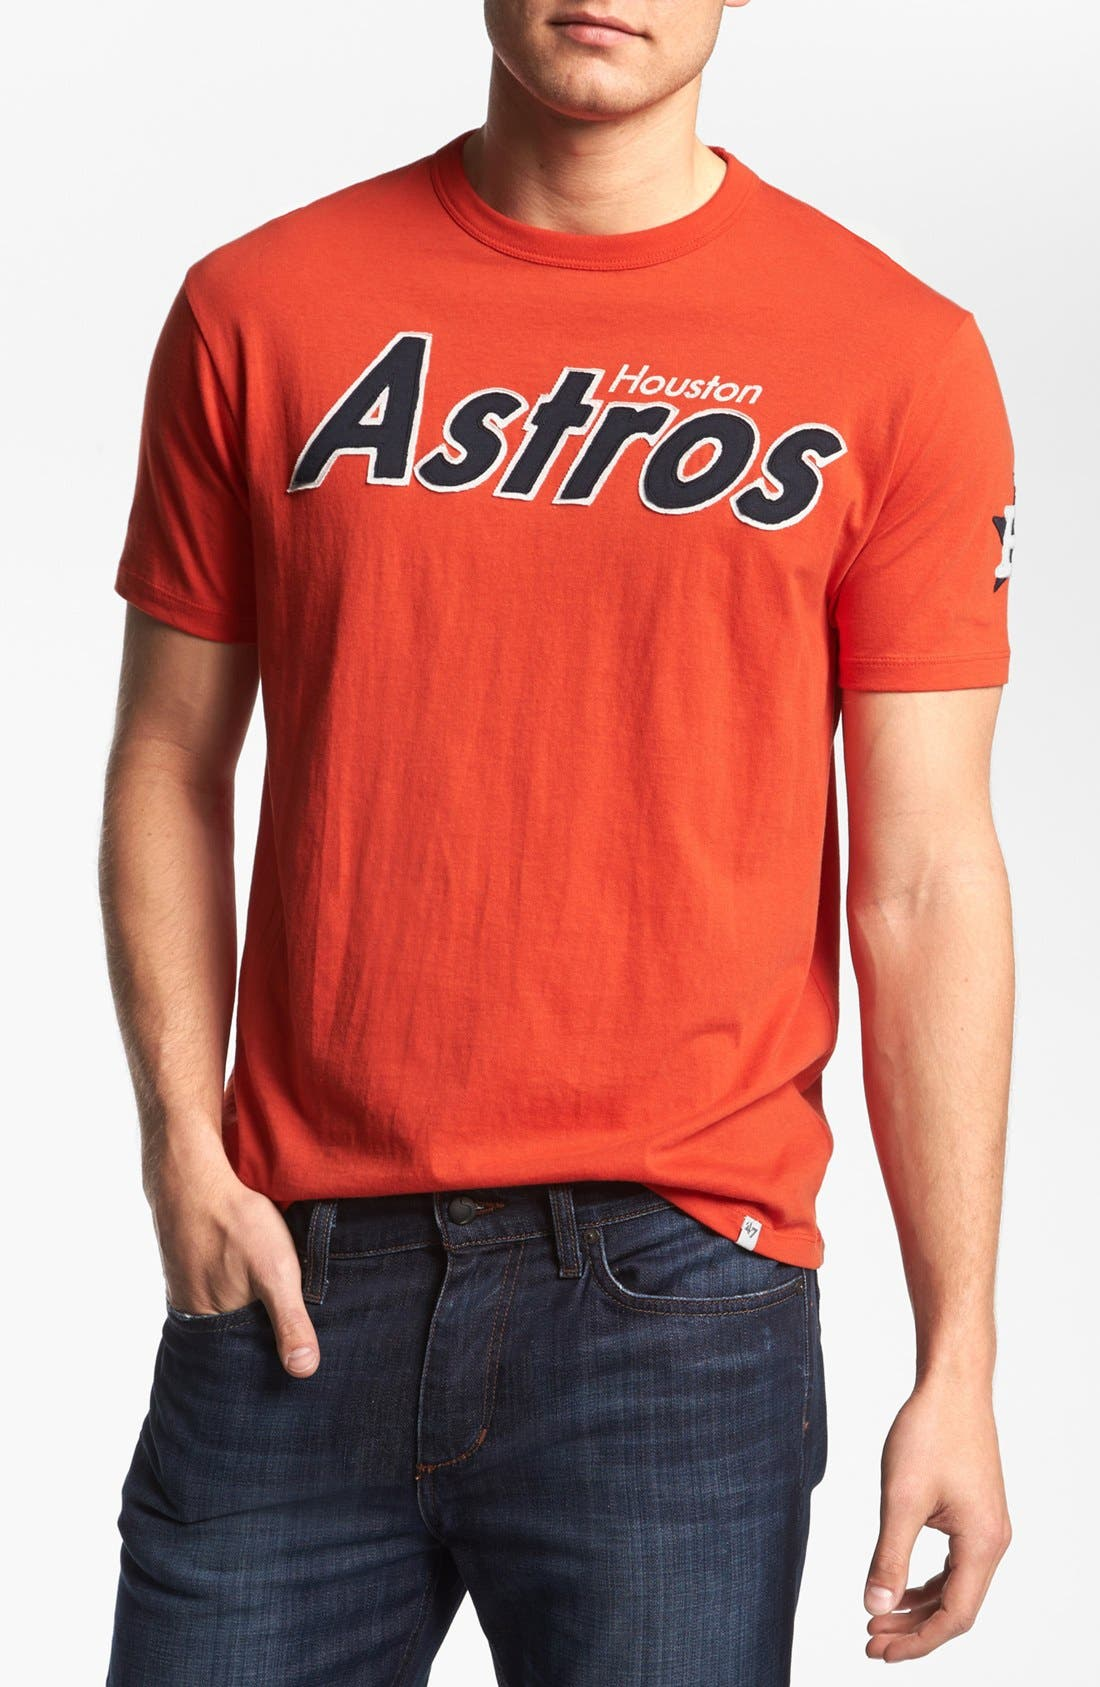 Alternate Image 1 Selected - 47 Brand 'Houston Astros - Fieldhouse' T-Shirt